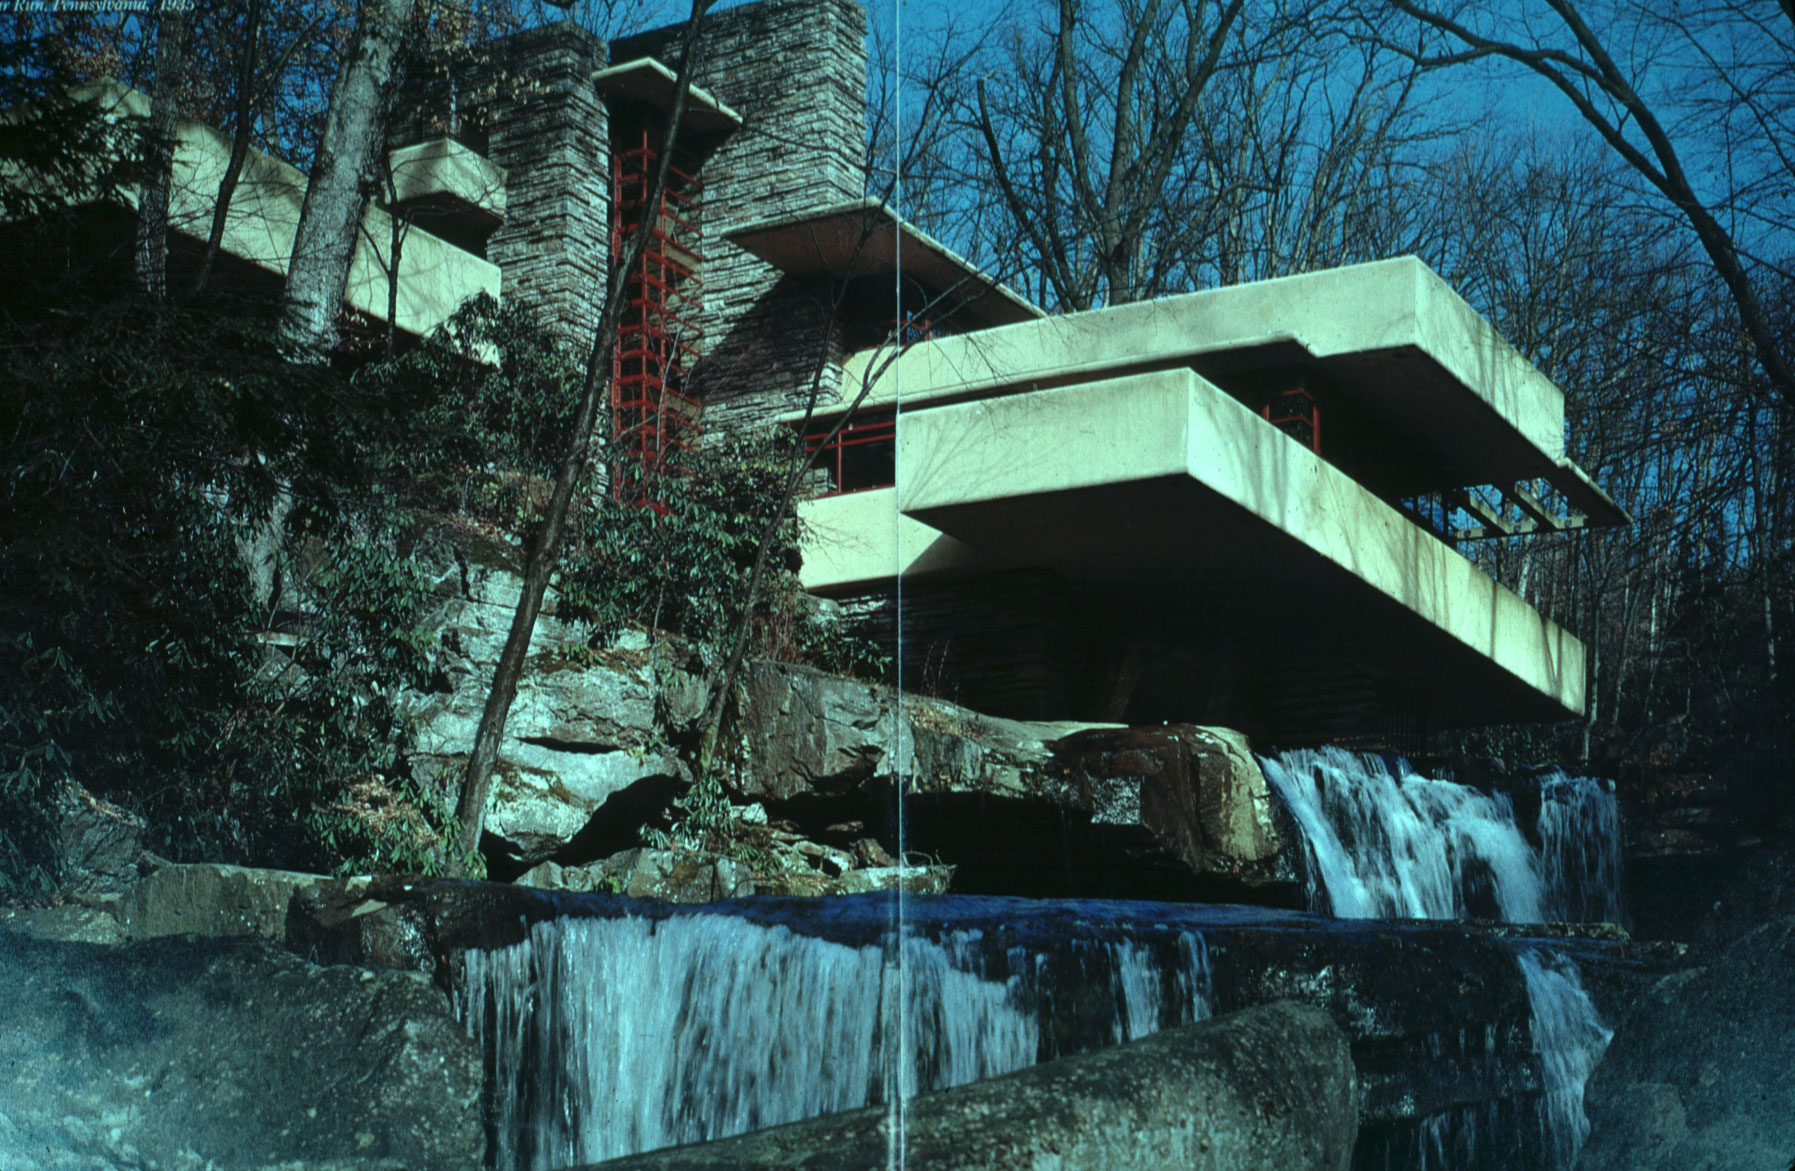 aspects of creative work fallingwater by Frank lloyd wright's organic architecture, seen in particular at taliesin west and fallingwater and their work can be seen in many modern designs.